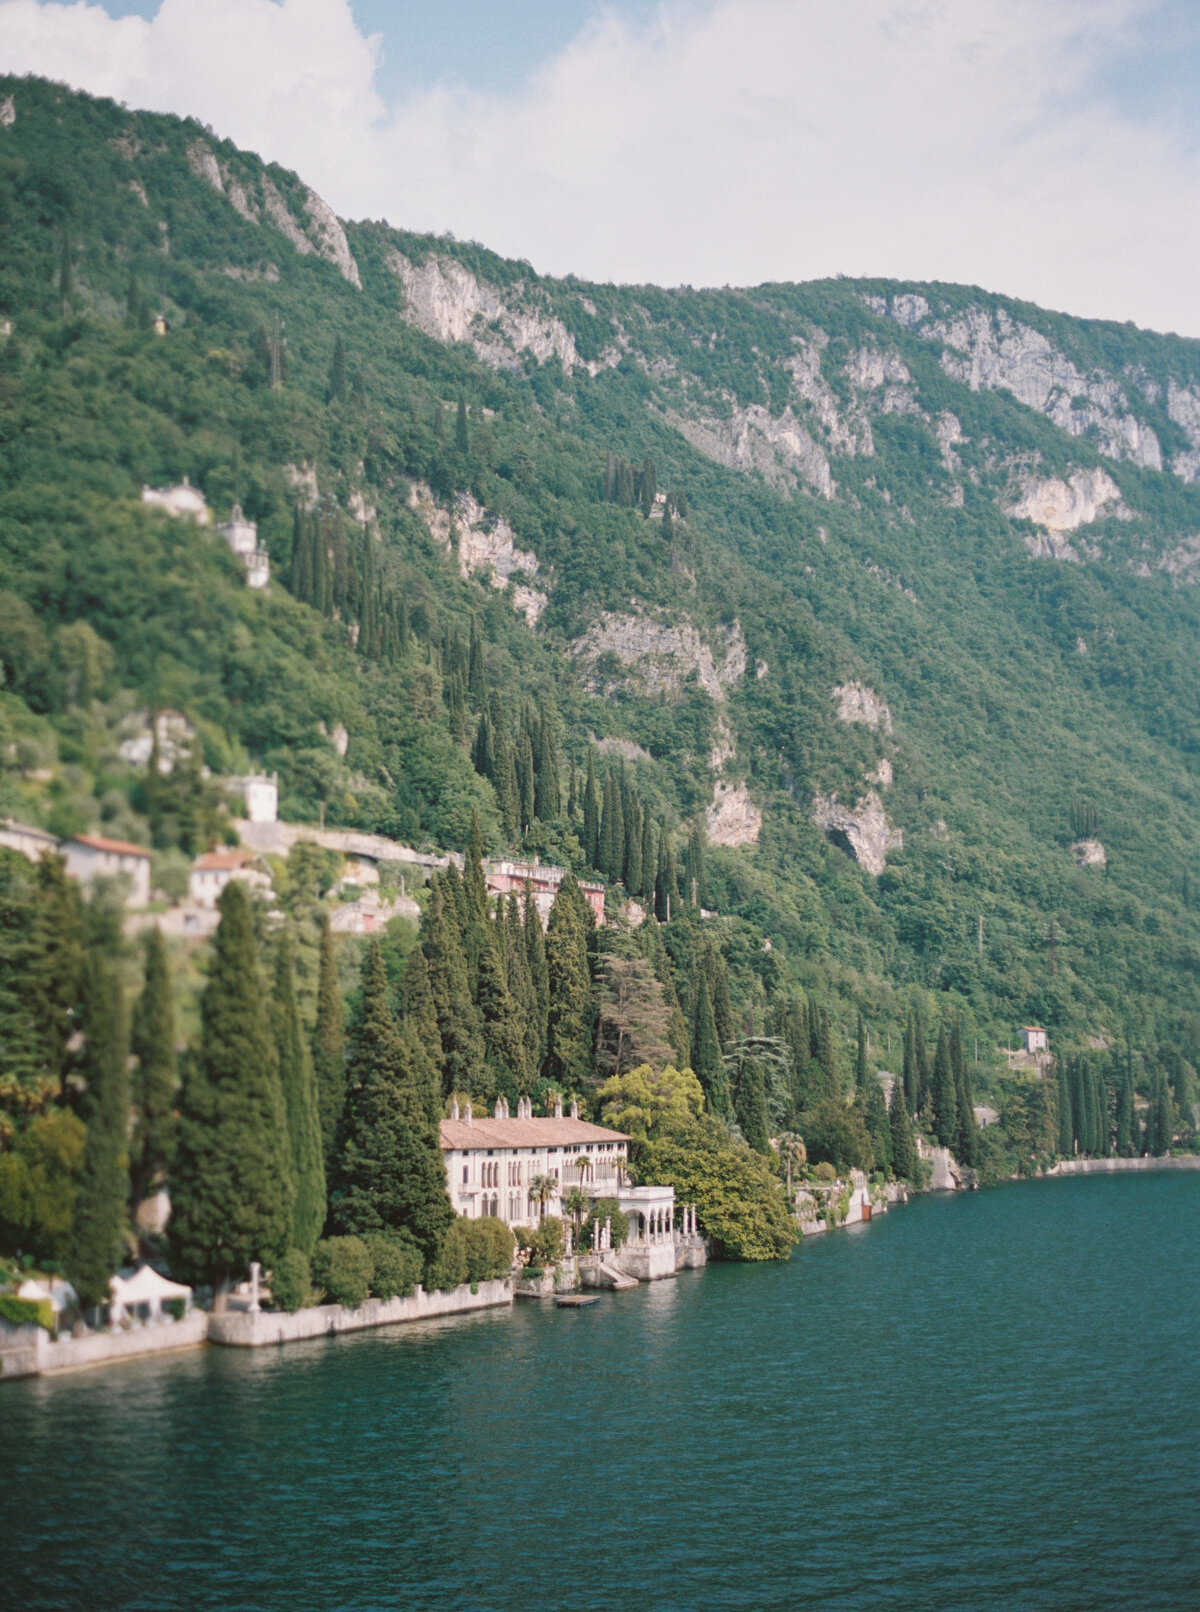 Lake-Como-Villa-Cipressi-Wedding-Katie-Grant-destination-wedding (2 of 93).jpg